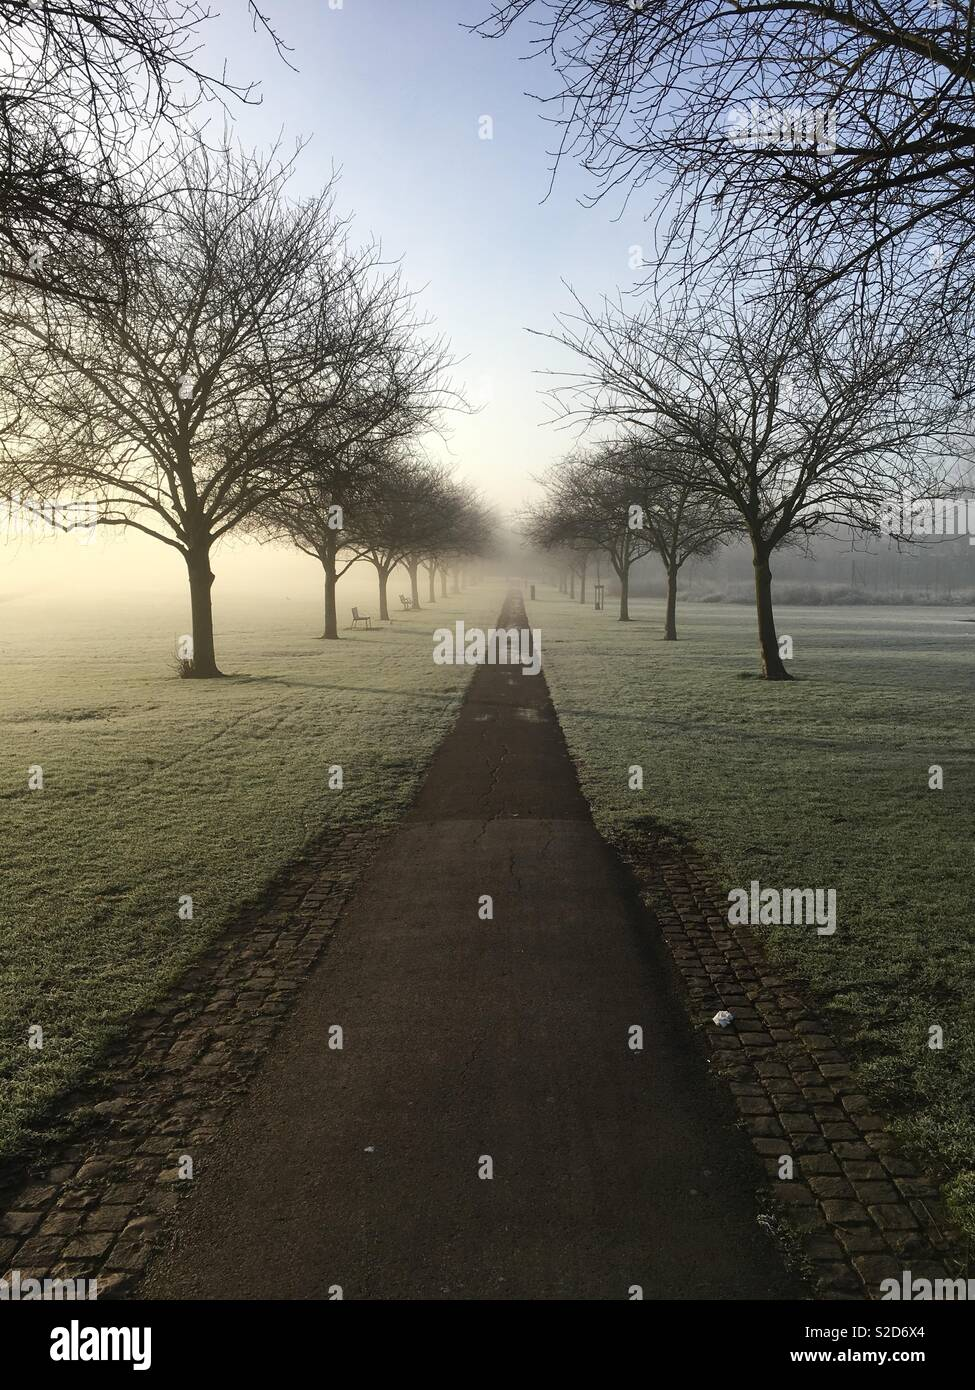 Misty path at Jesus Green in Cambridge - Stock Image